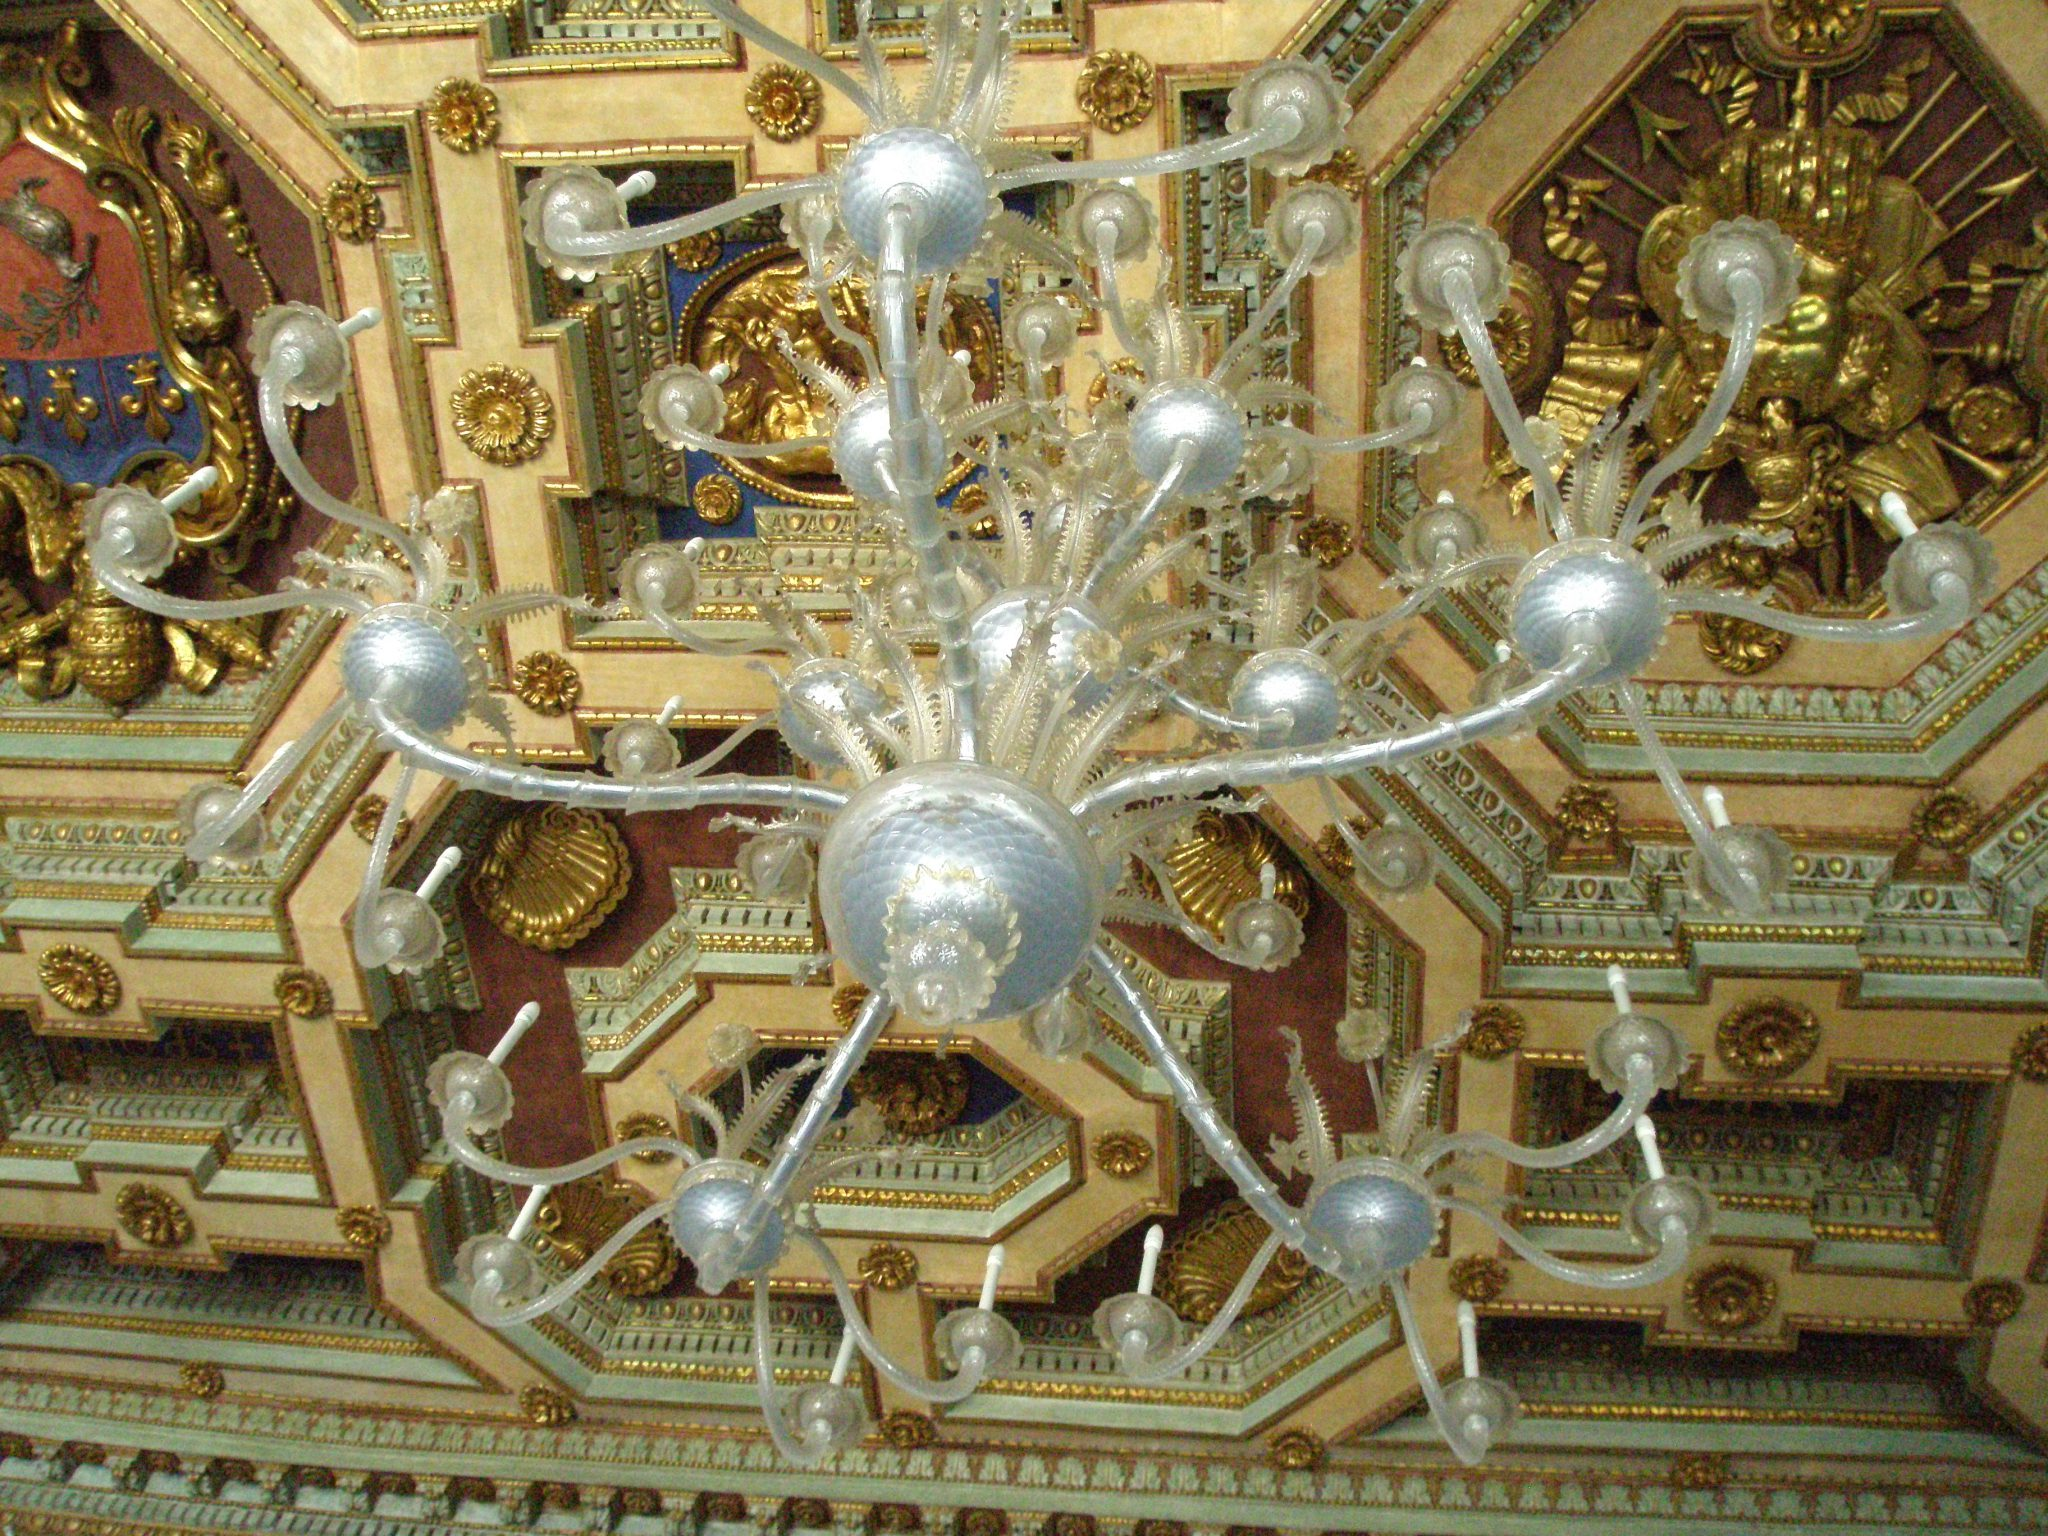 Glass Chandelier in the Great Hall